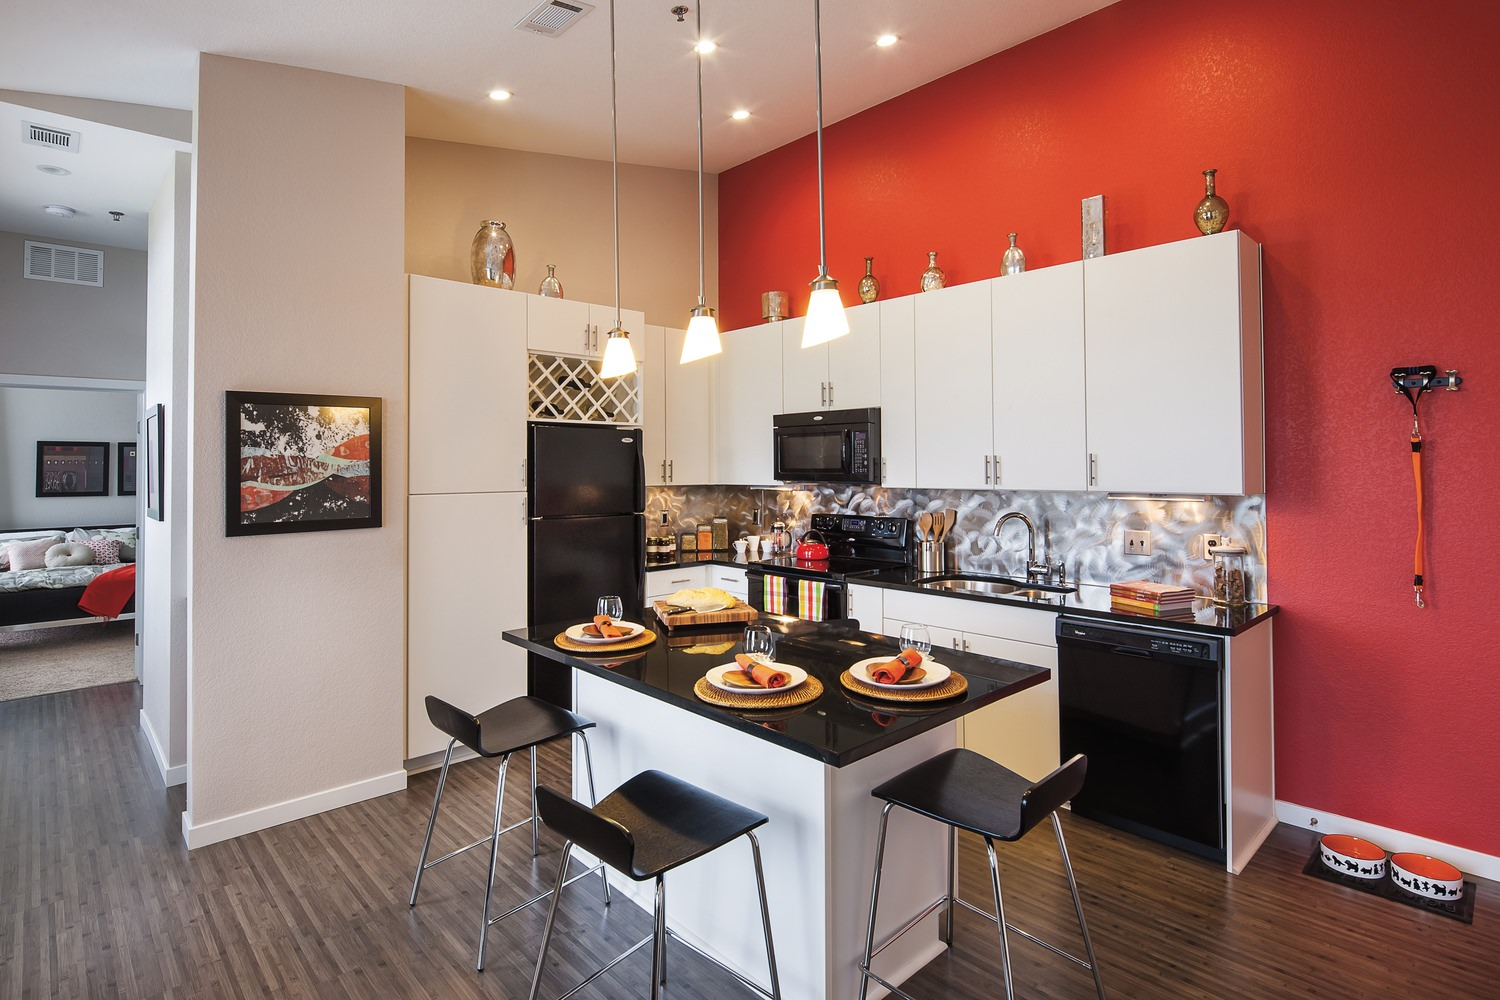 A small kitchen that has chairs around the island, white cabinets, and black appliances with red painted walls.